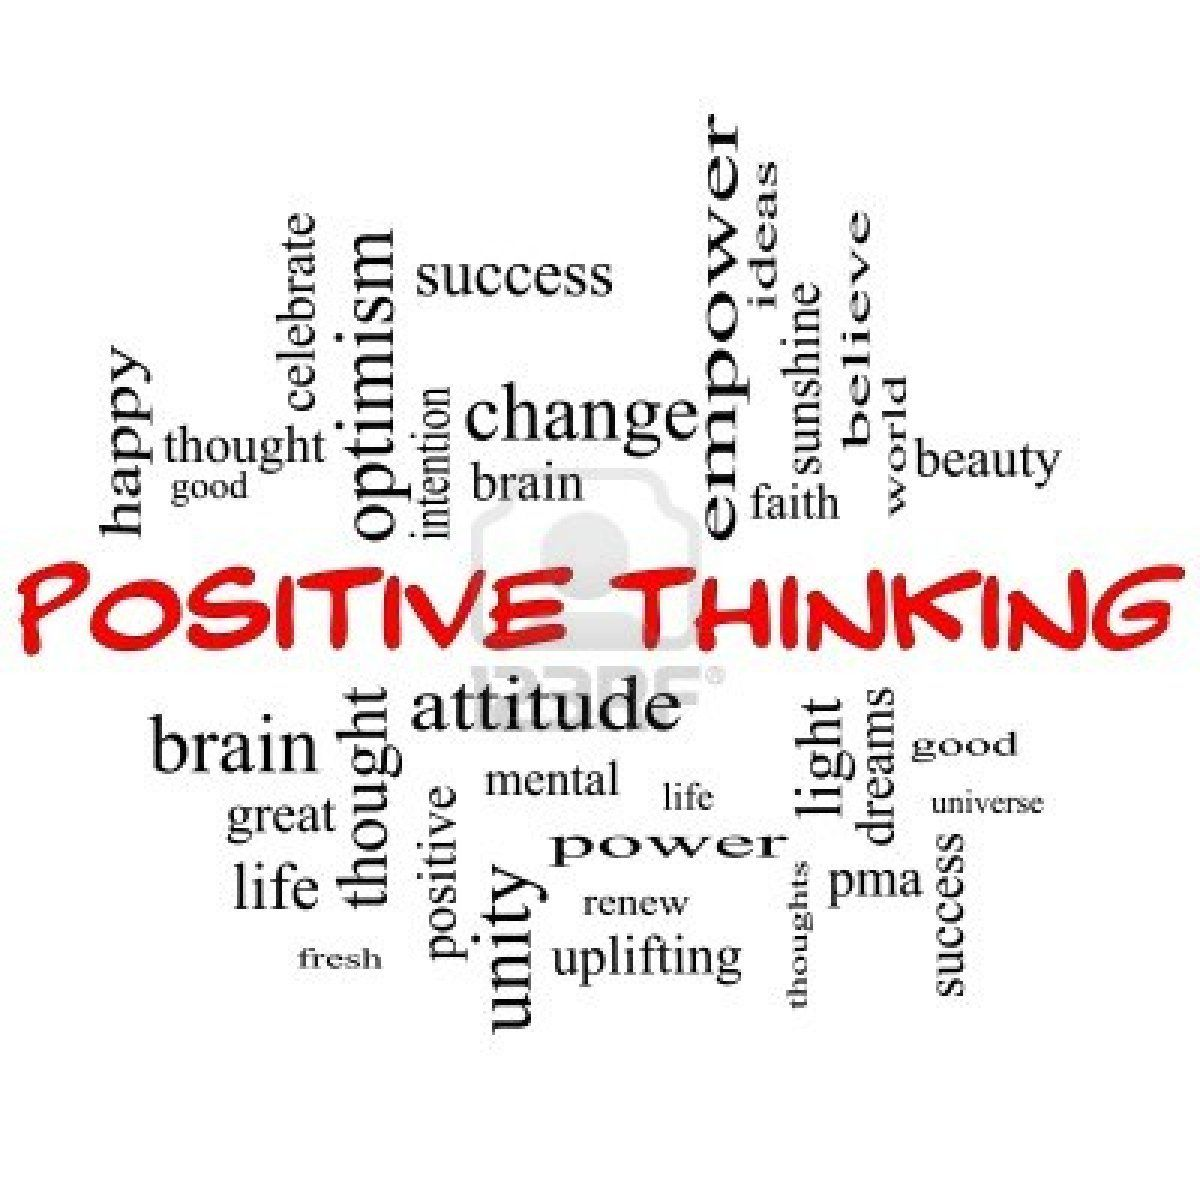 power of positive thinking essay essay on power of positive thinking essay healing through the power of positive thinking learning more